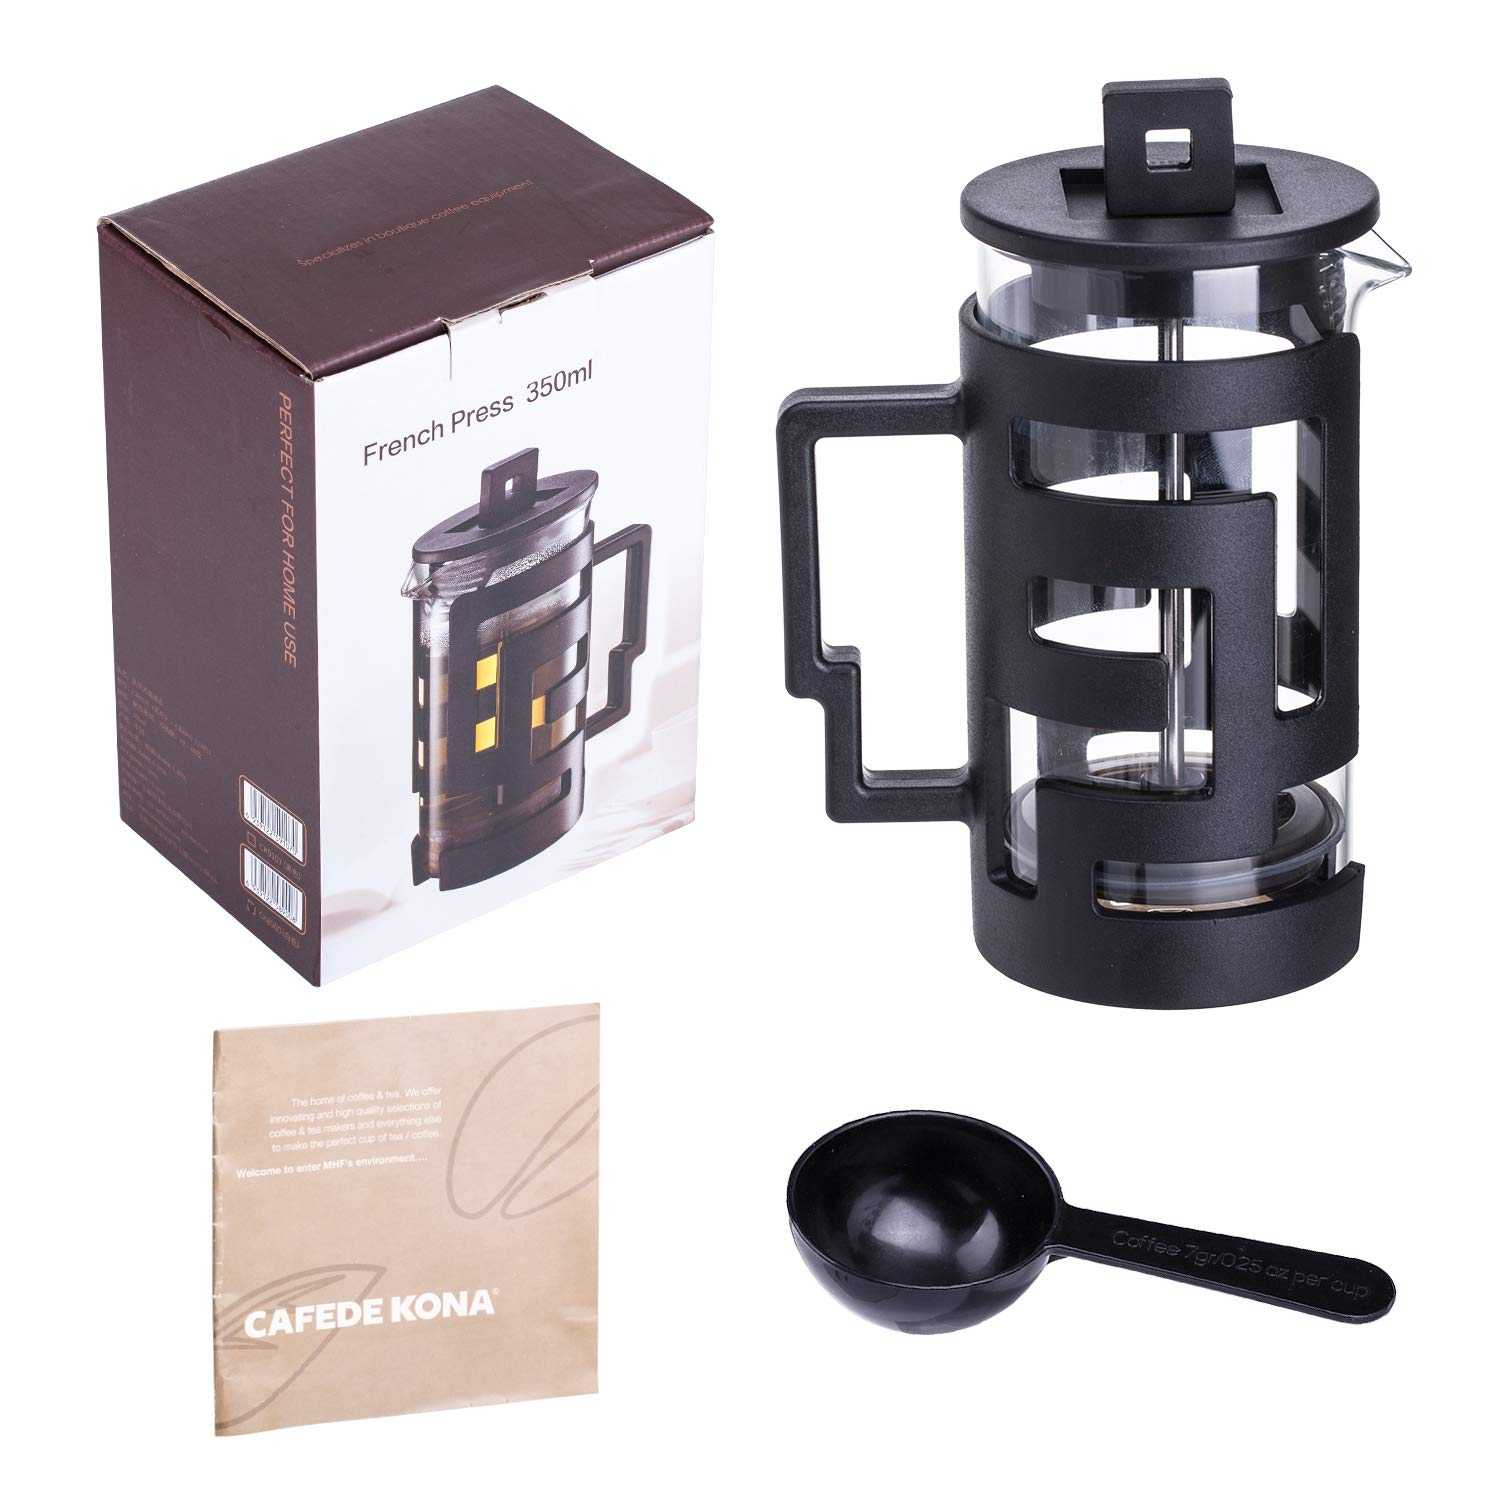 Zeroomade French Press Coffee Maker Stainless Steel&Glass Mini French Press Best Camping Coffee Press Pot Heat-Resistant Coffee Press Black 12 OZ(350ML)